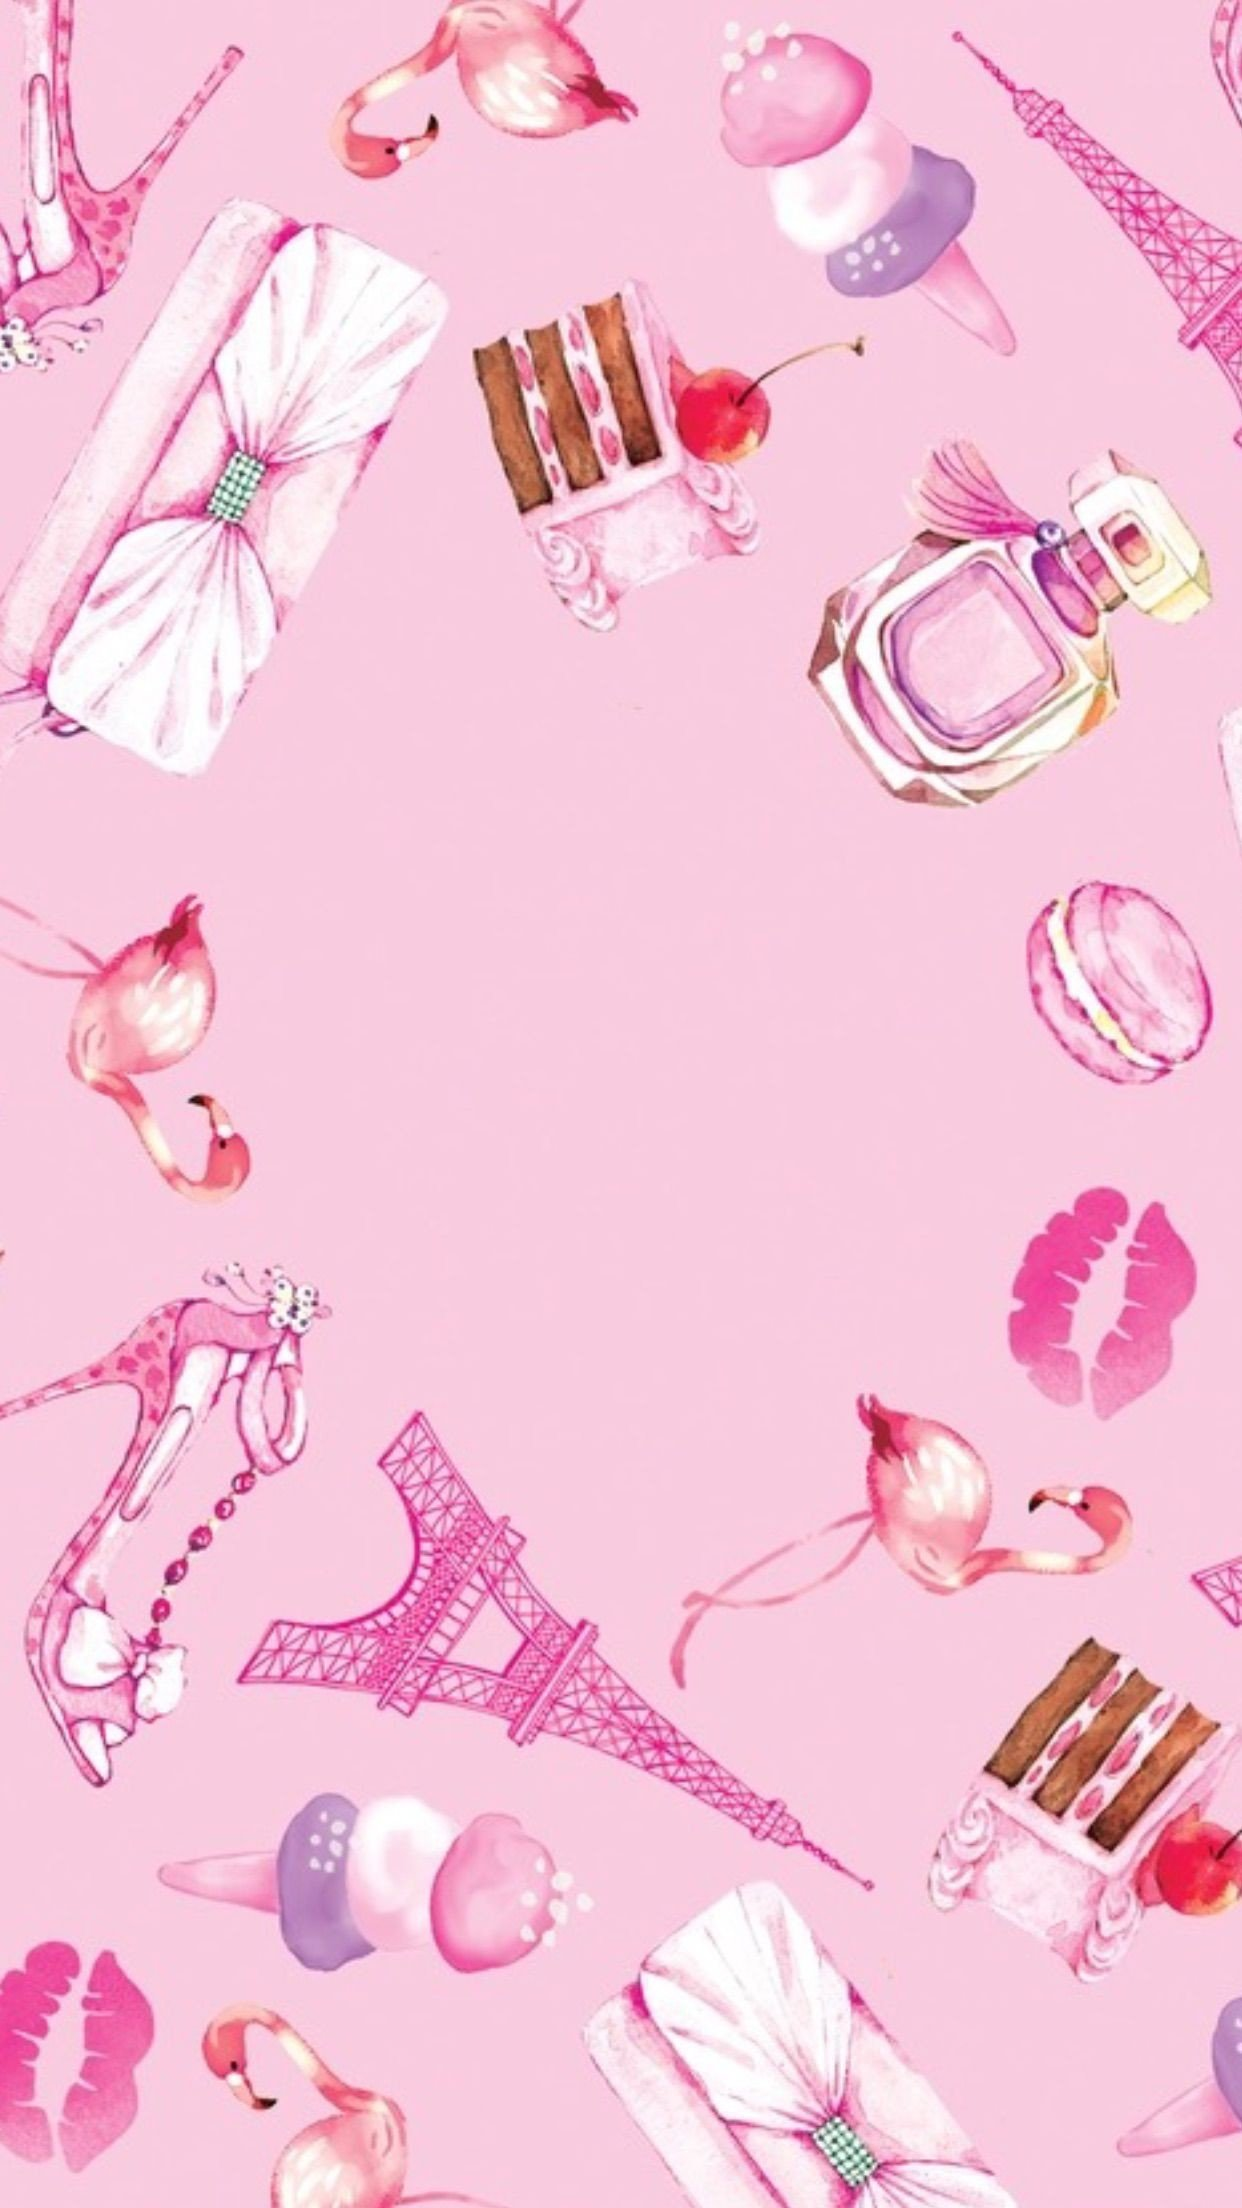 Girly Background Images HD Wallpapers 1242x2208